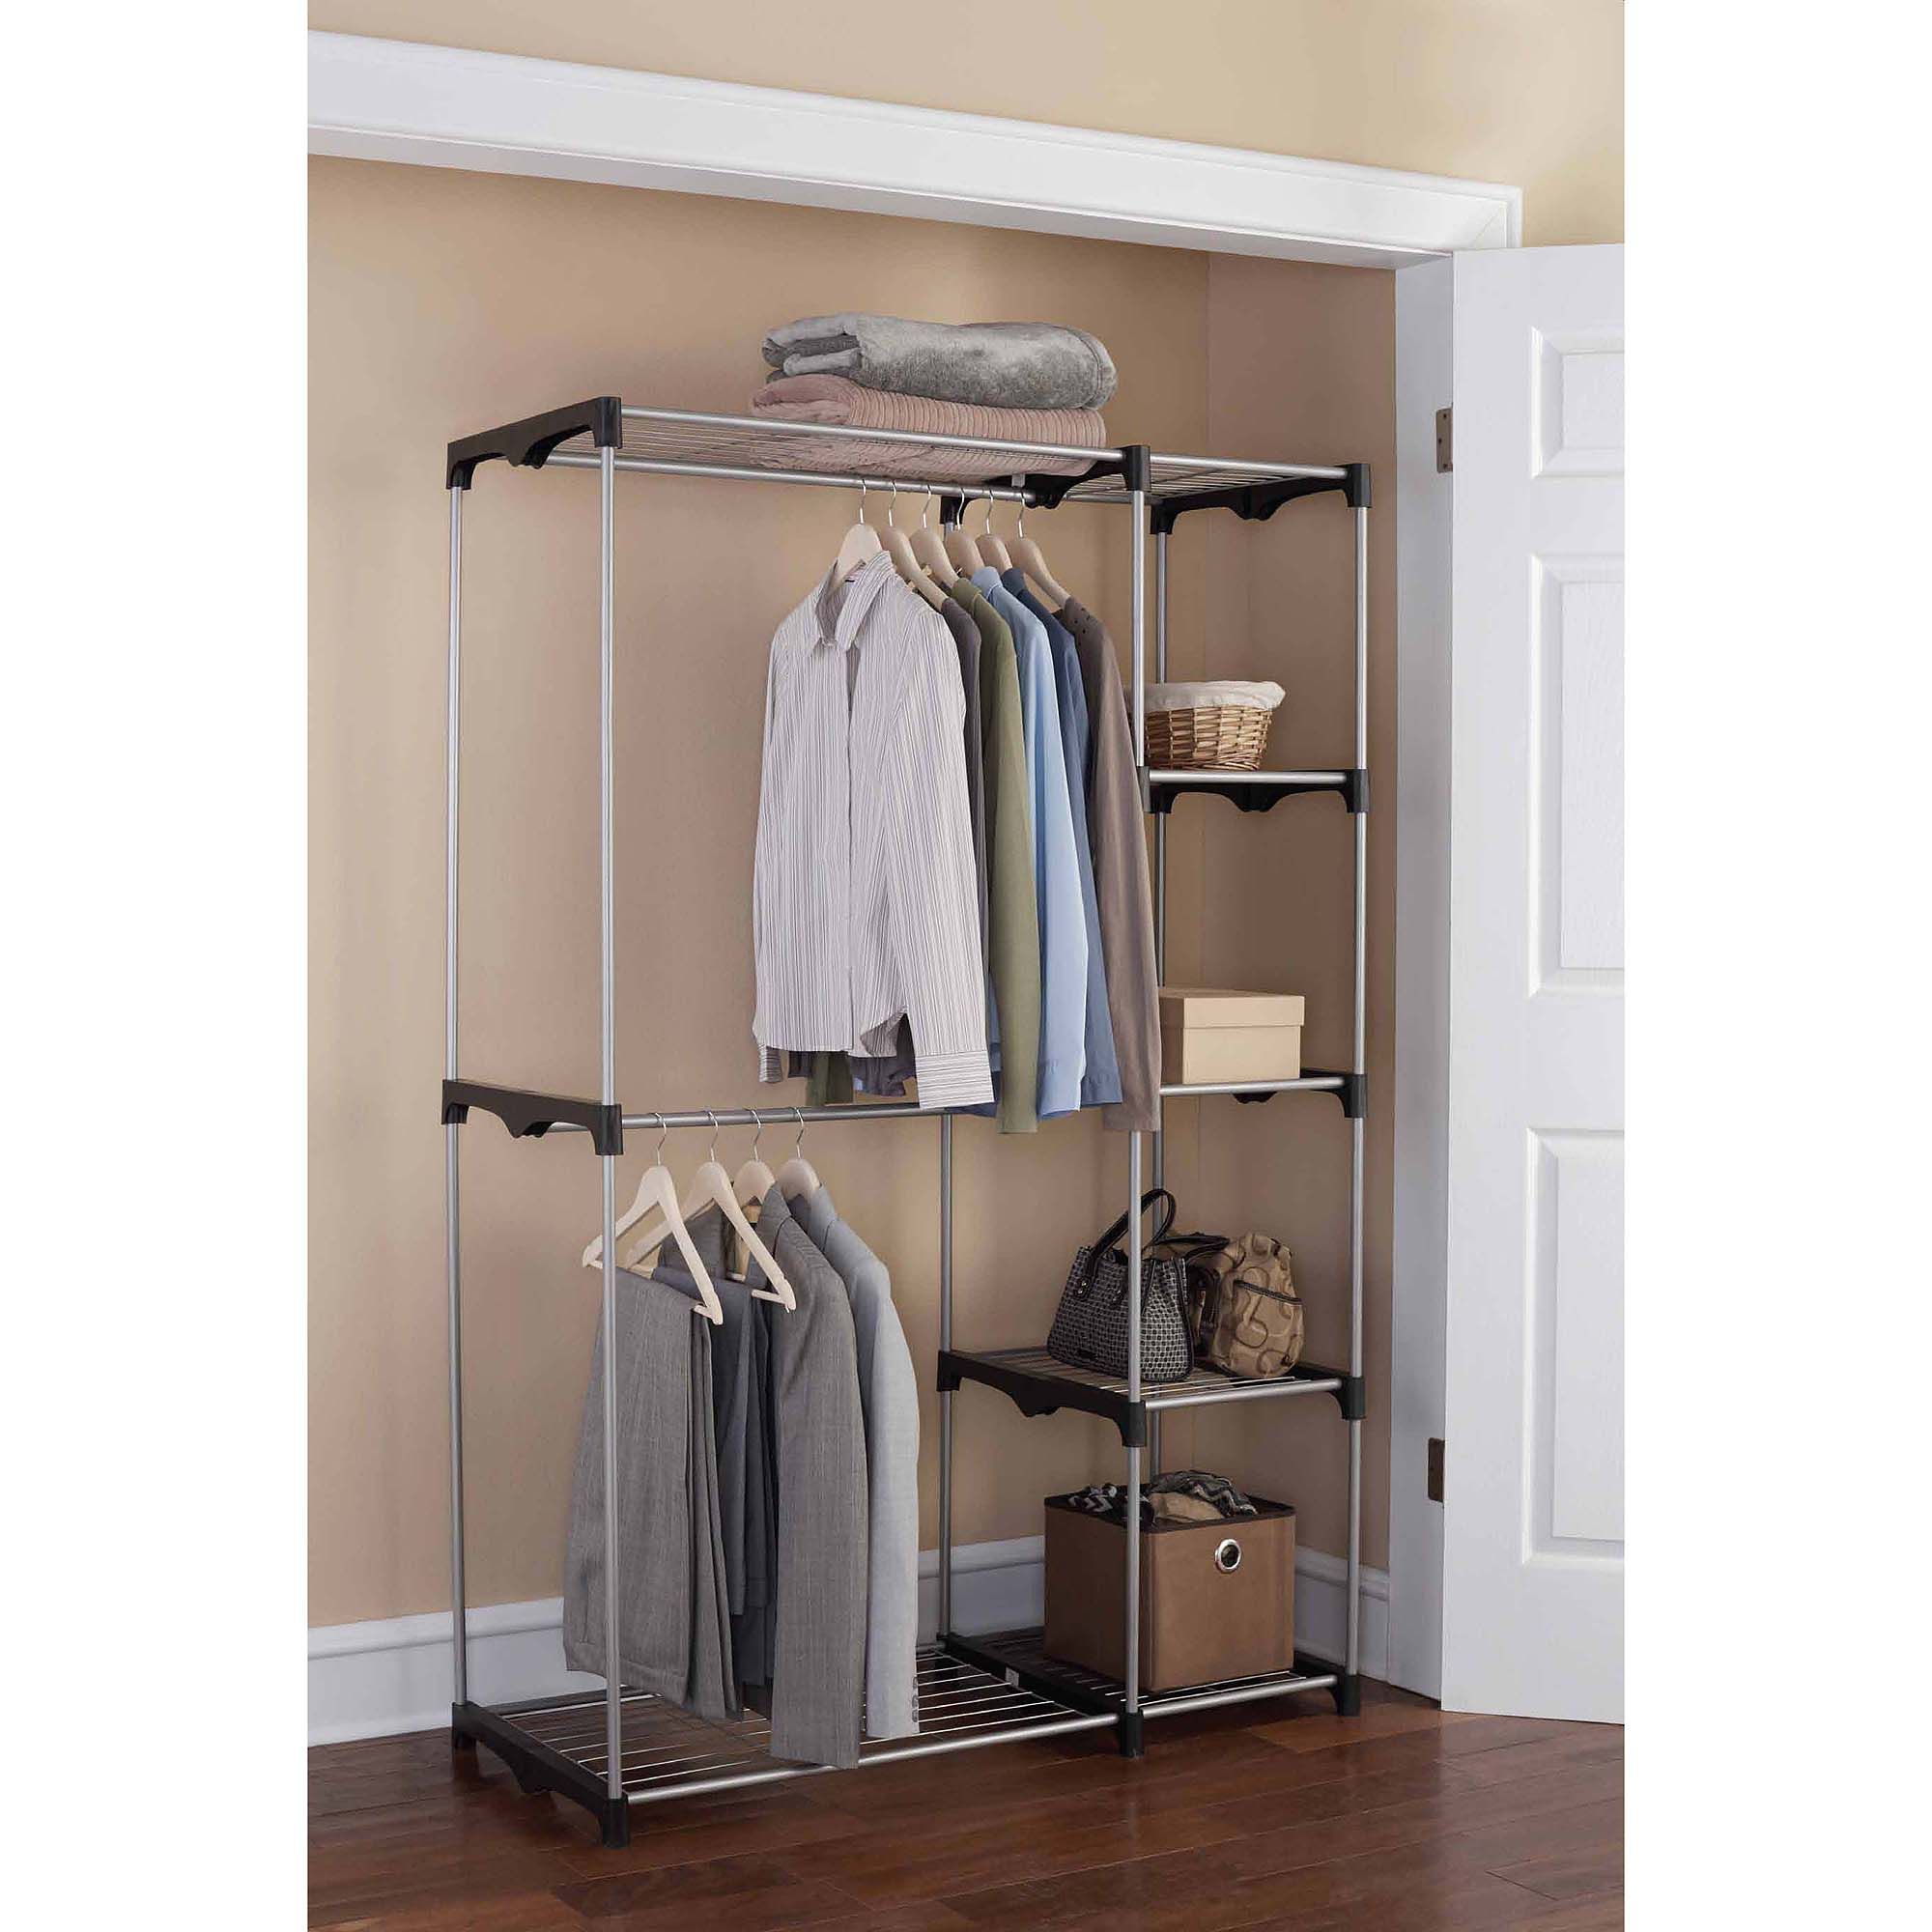 Mainstays Wire Shelf Closet Organizer, Black/Silver - Walmart.com